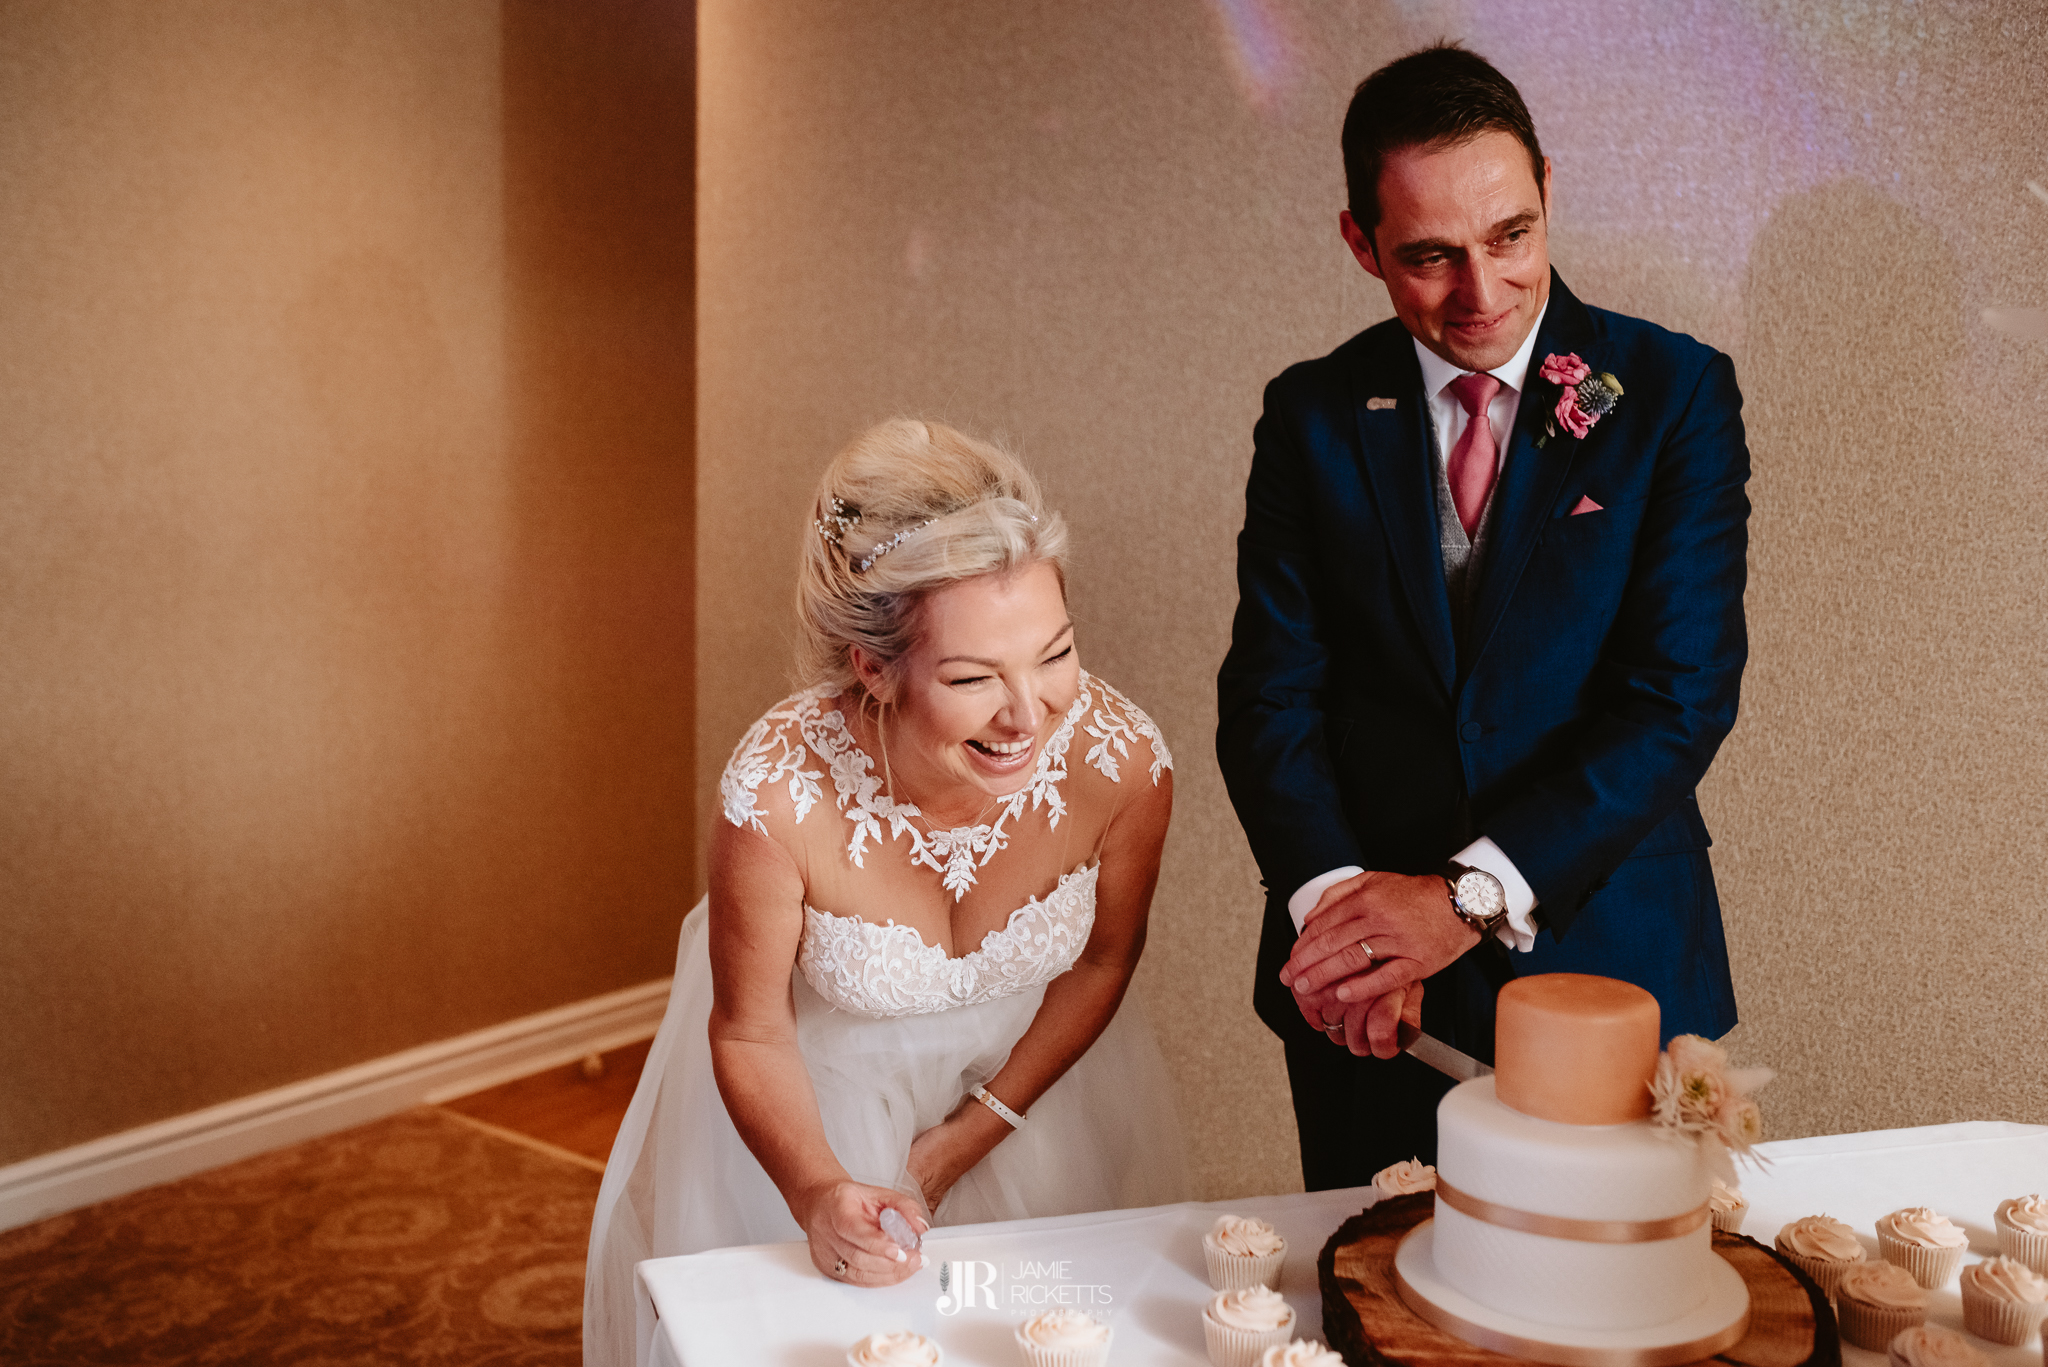 Wroxeter-Hotel-Wedding-Photography-In-Shropshire-By-Shropshire-Wedding-Photographer-Jamie-Ricketts-213.JPG